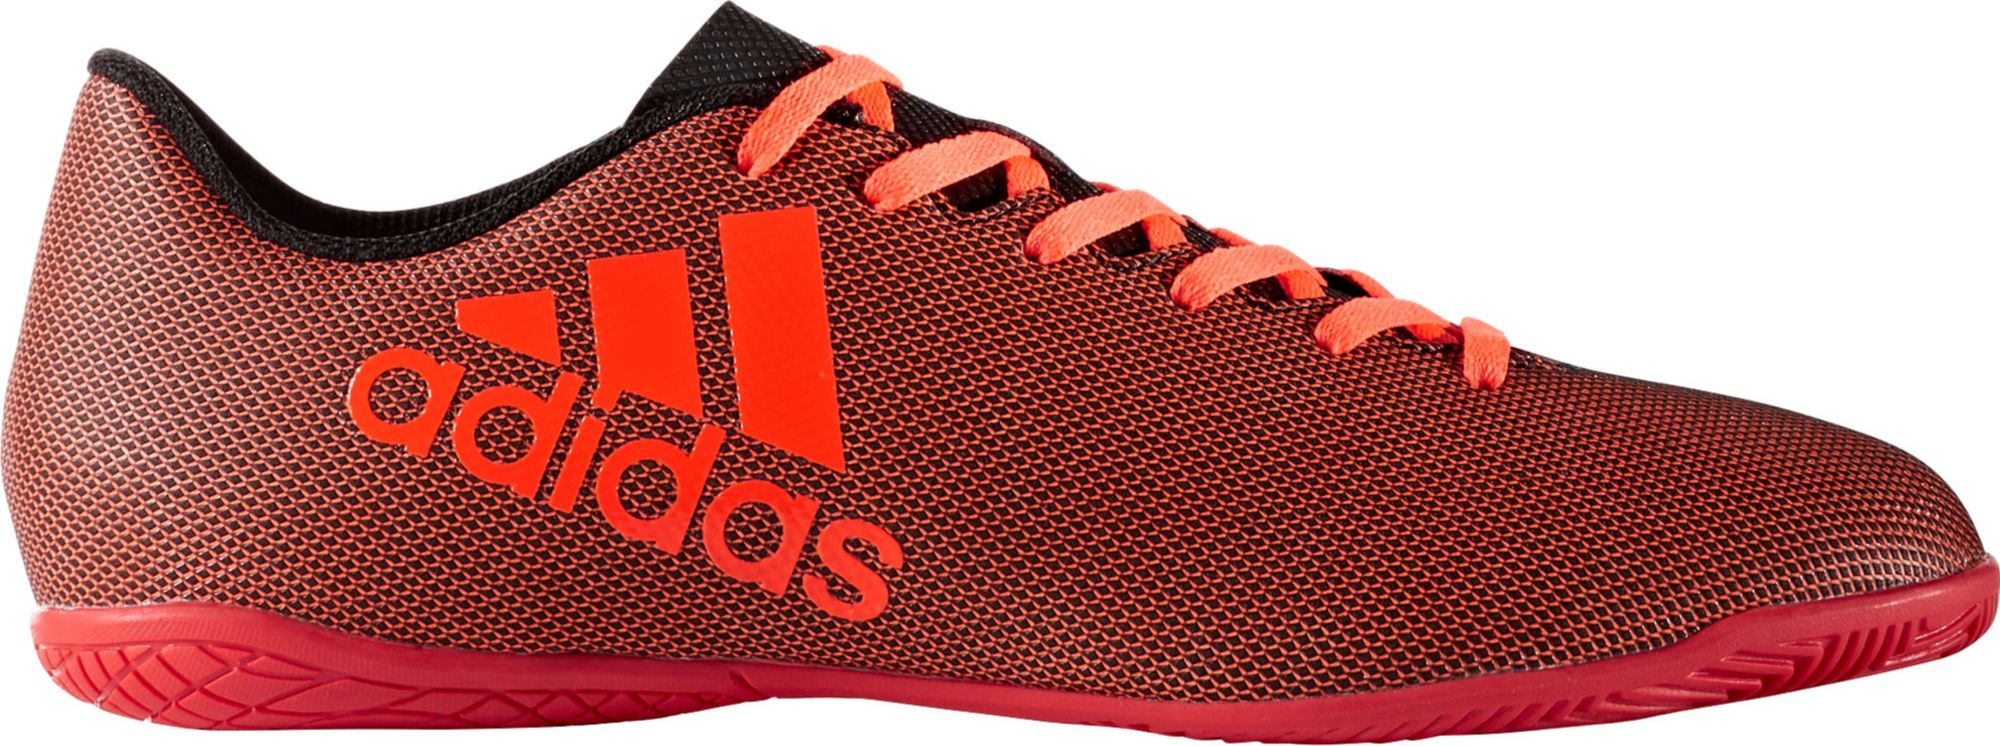 dcece85e9e0 ... where to buy adidas indoor soccer shoes efba6 d2043